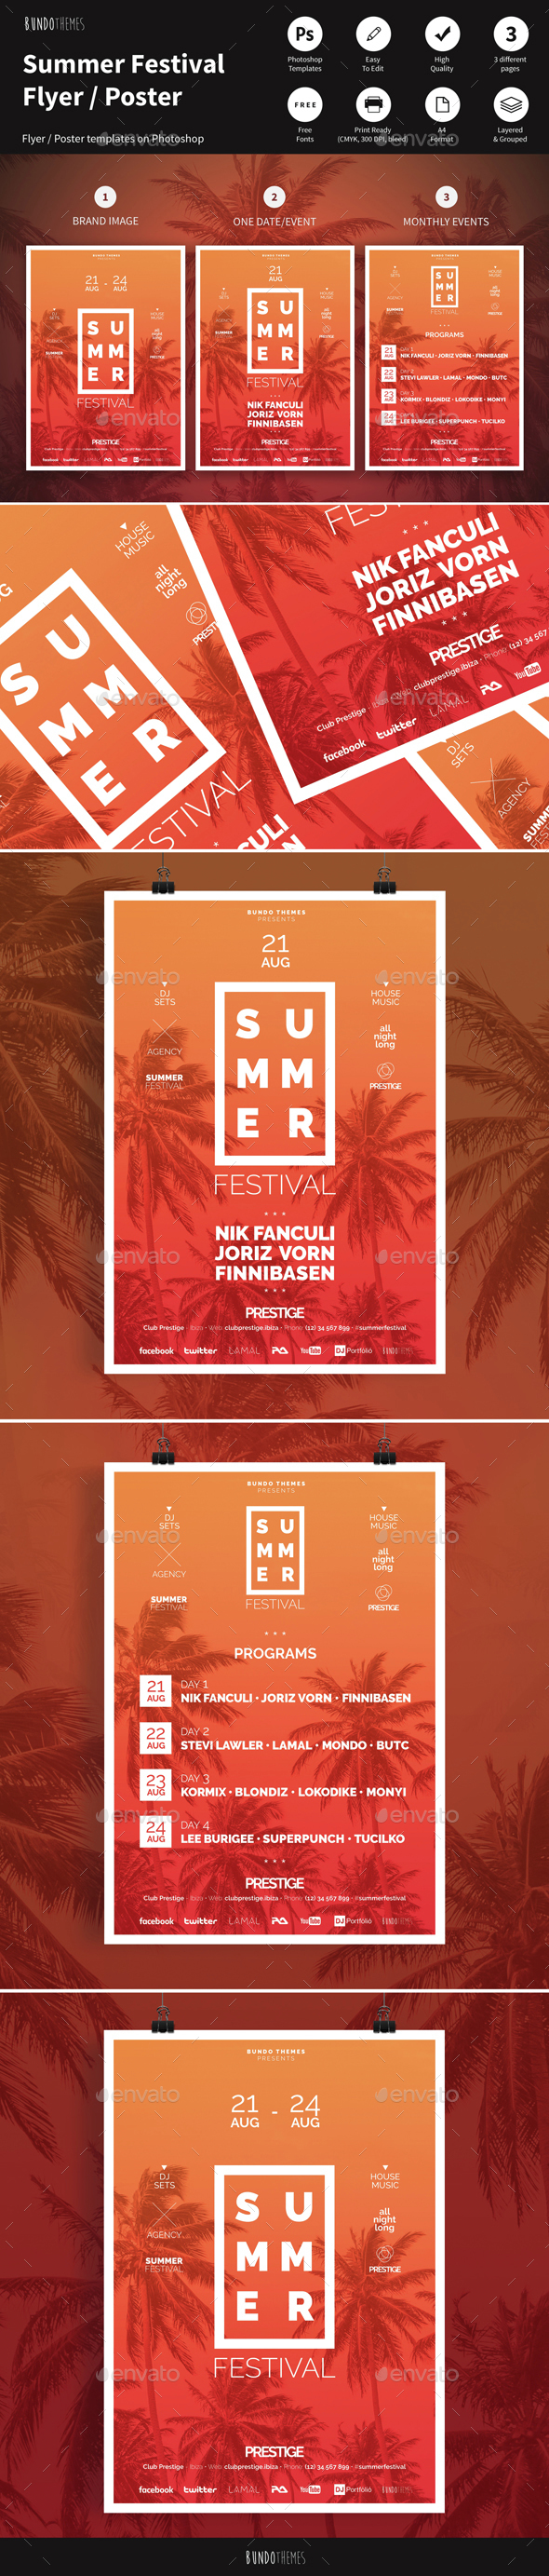 Summer Festival Flyer / Poster - Concerts Events